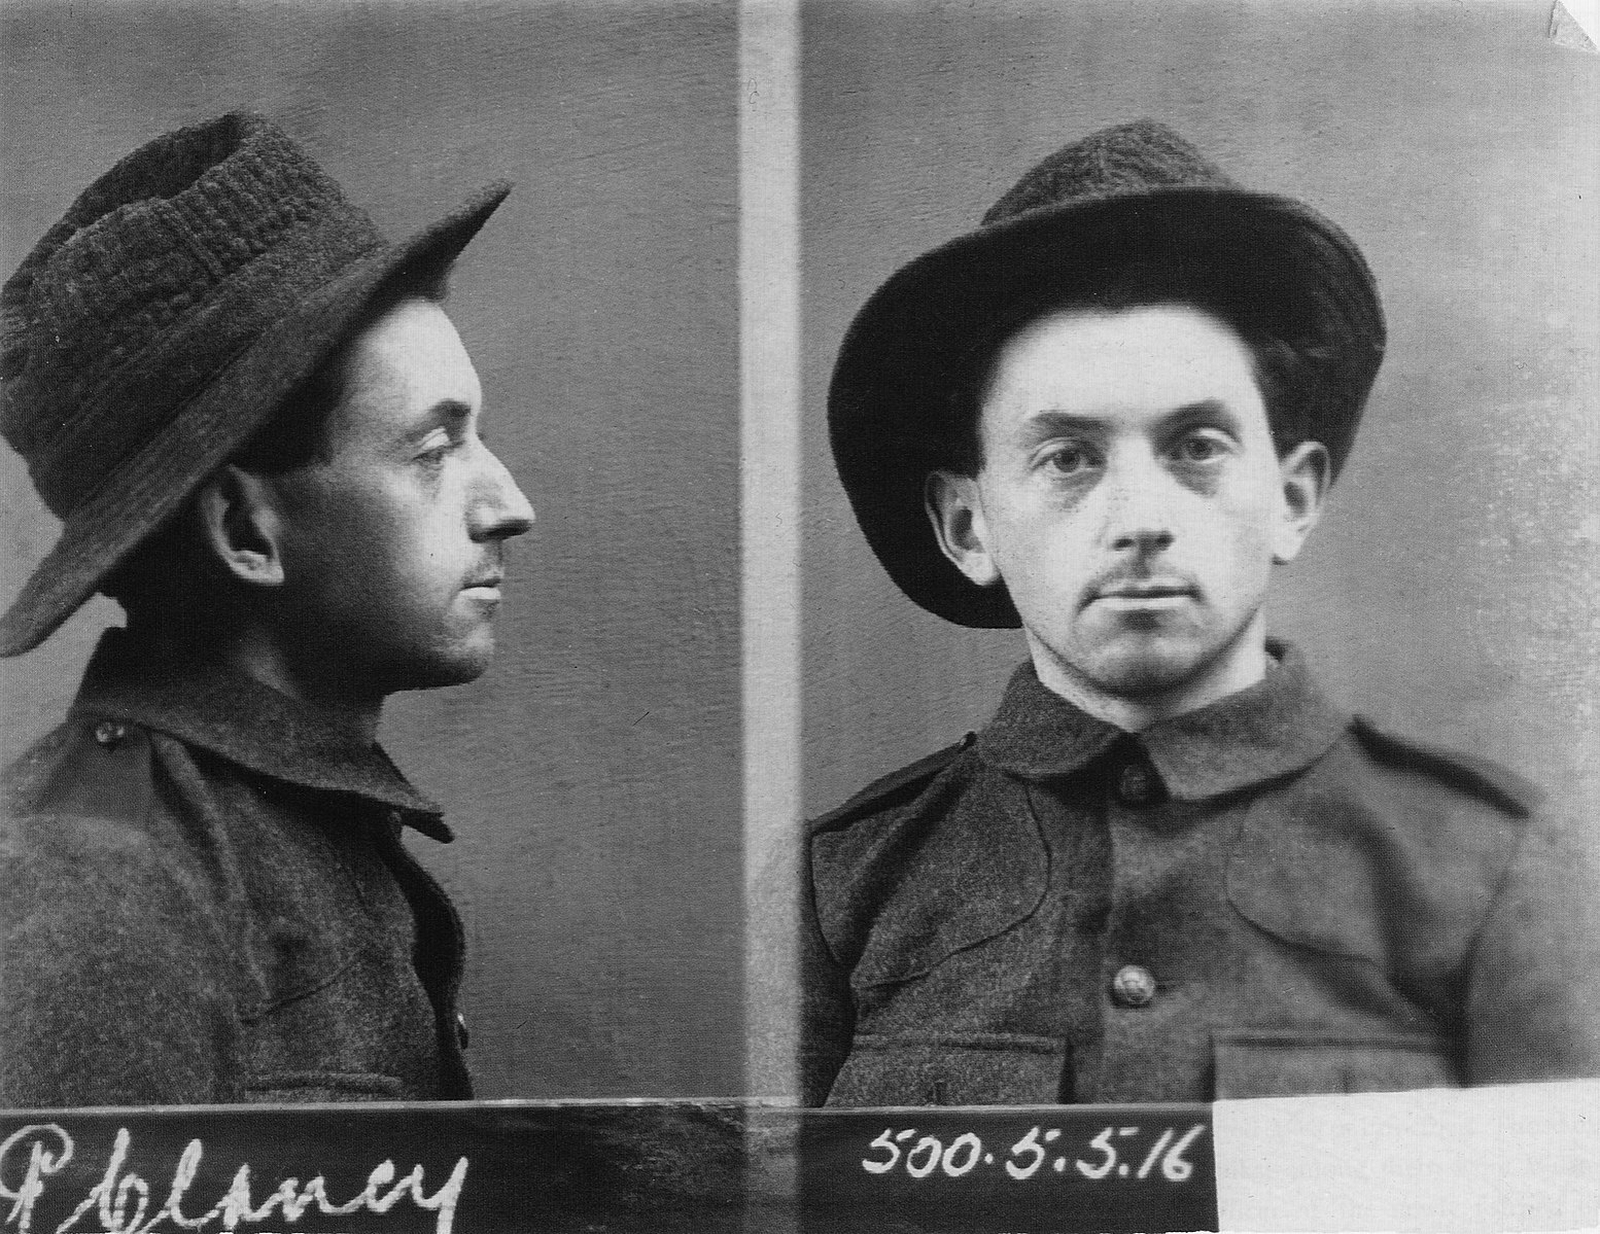 Image - Peadar Clancy, shown here in 1916. He and Dick McKee were killed in Dublin Castle, allegedly while trying to escape. Image courtesy of Kilmainham Gaol Museum/OPW 17PO-1A22-20